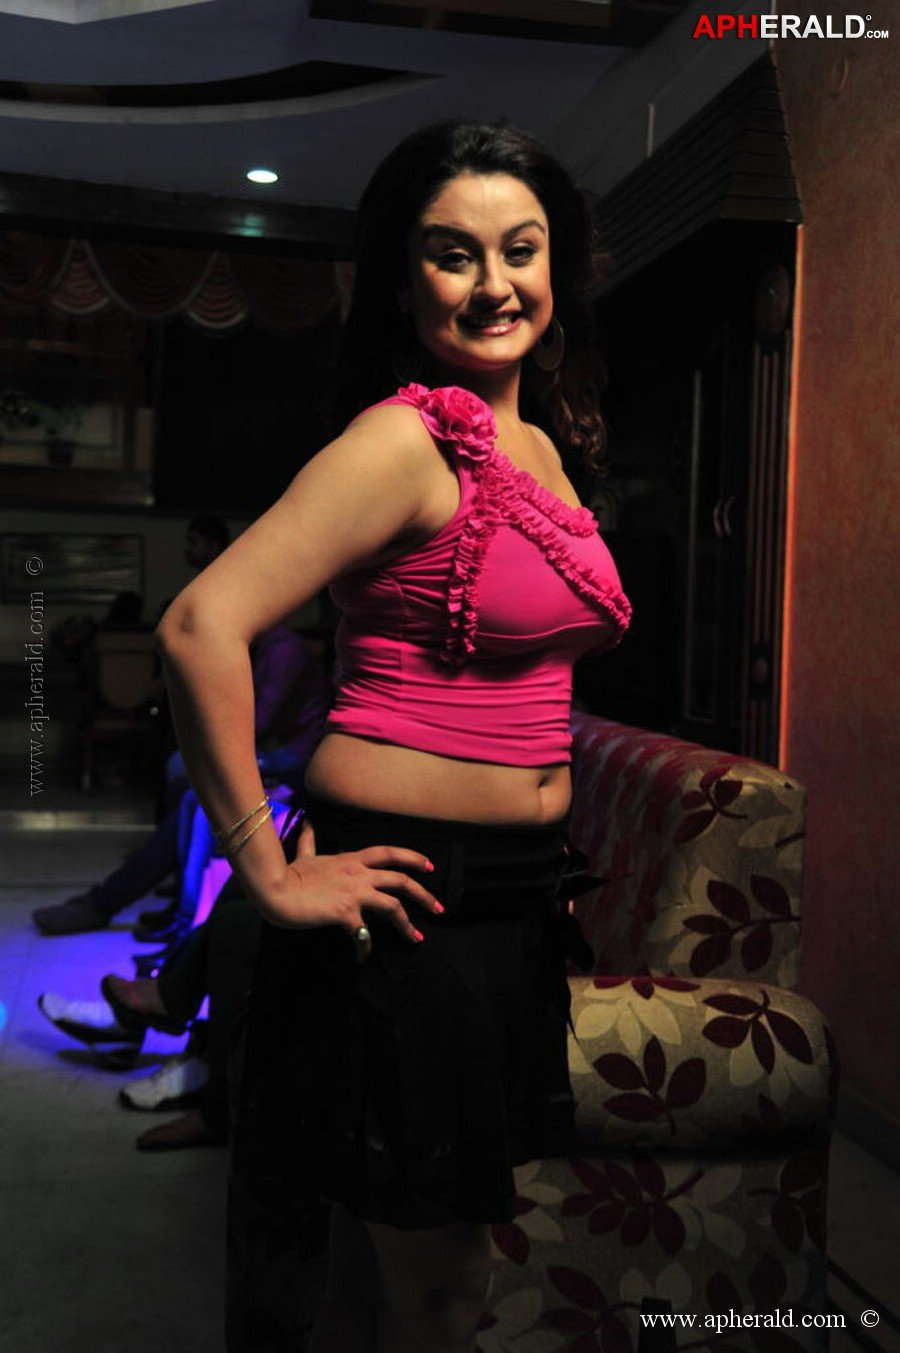 Image result for <a class='inner-topic-link' href='/search/topic?searchType=search&searchTerm=SONIA AGARWAL' target='_blank' title='click here to read more about SONIA AGARWAL'>sonia agarwal </a>apherald